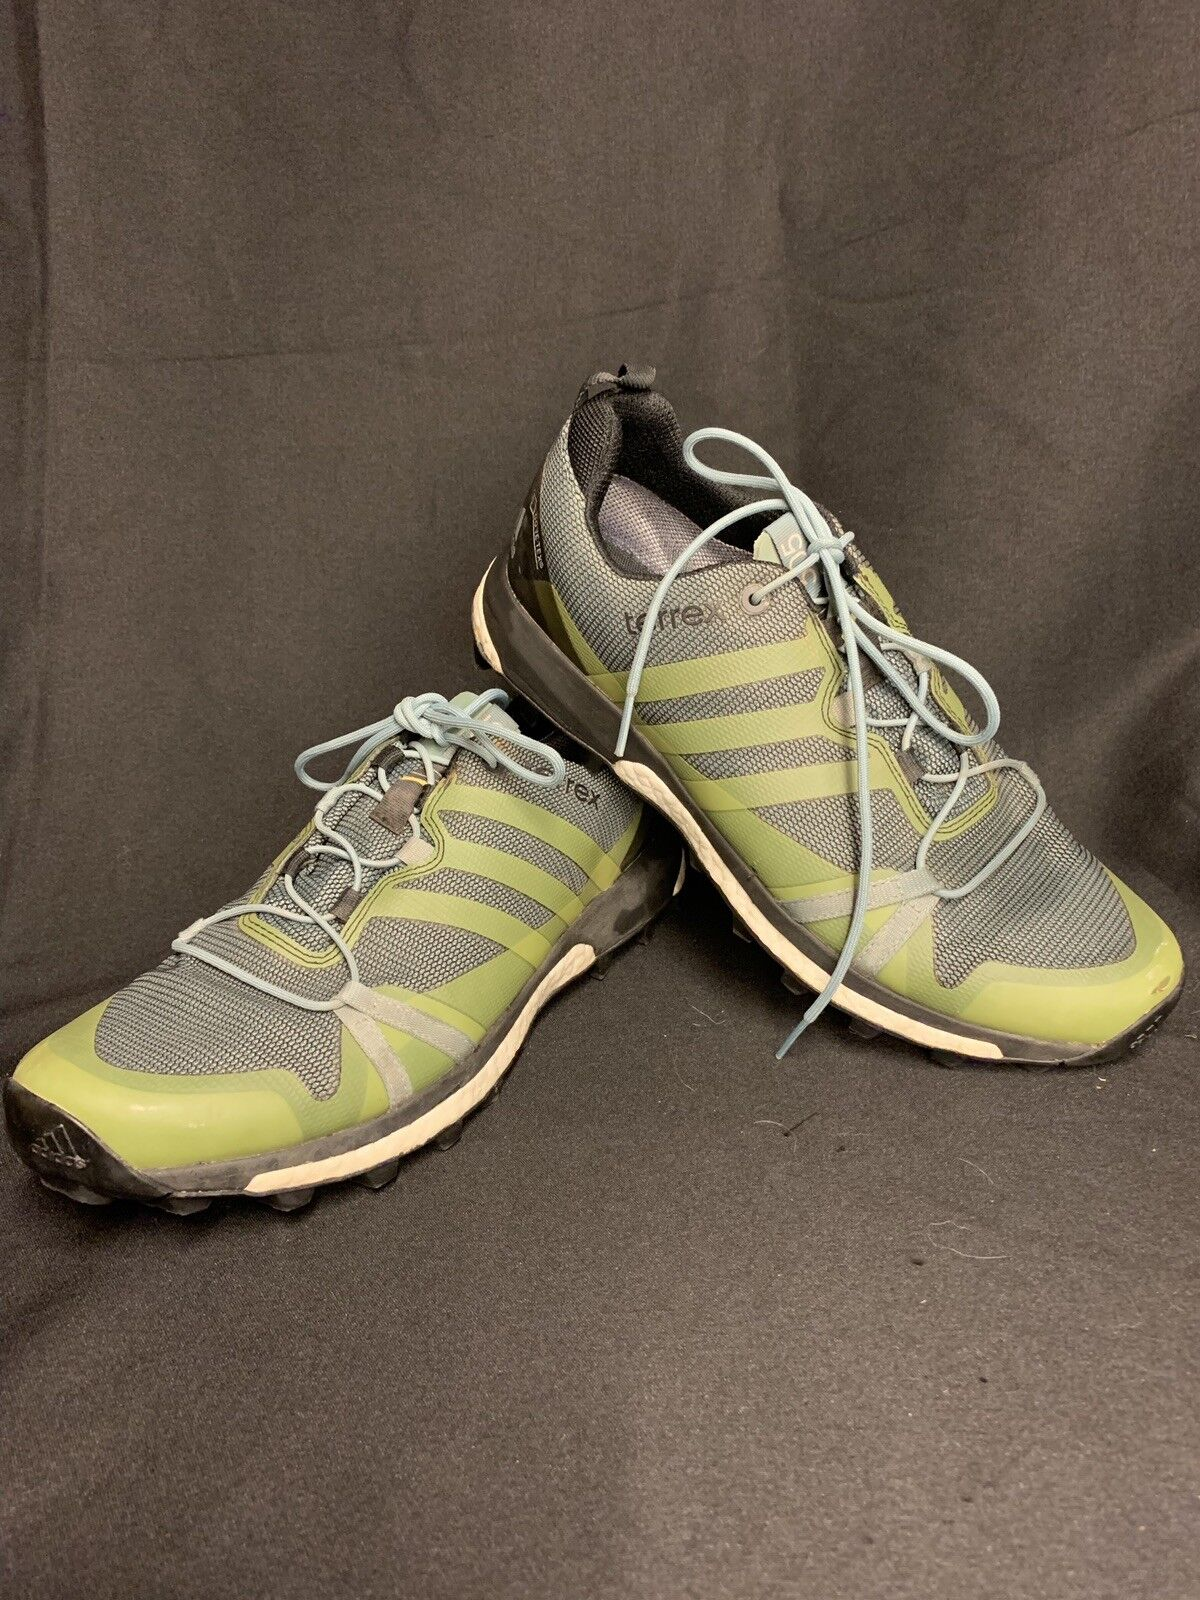 Adidas Outdoor Terrex Agravic Trail Running shoes